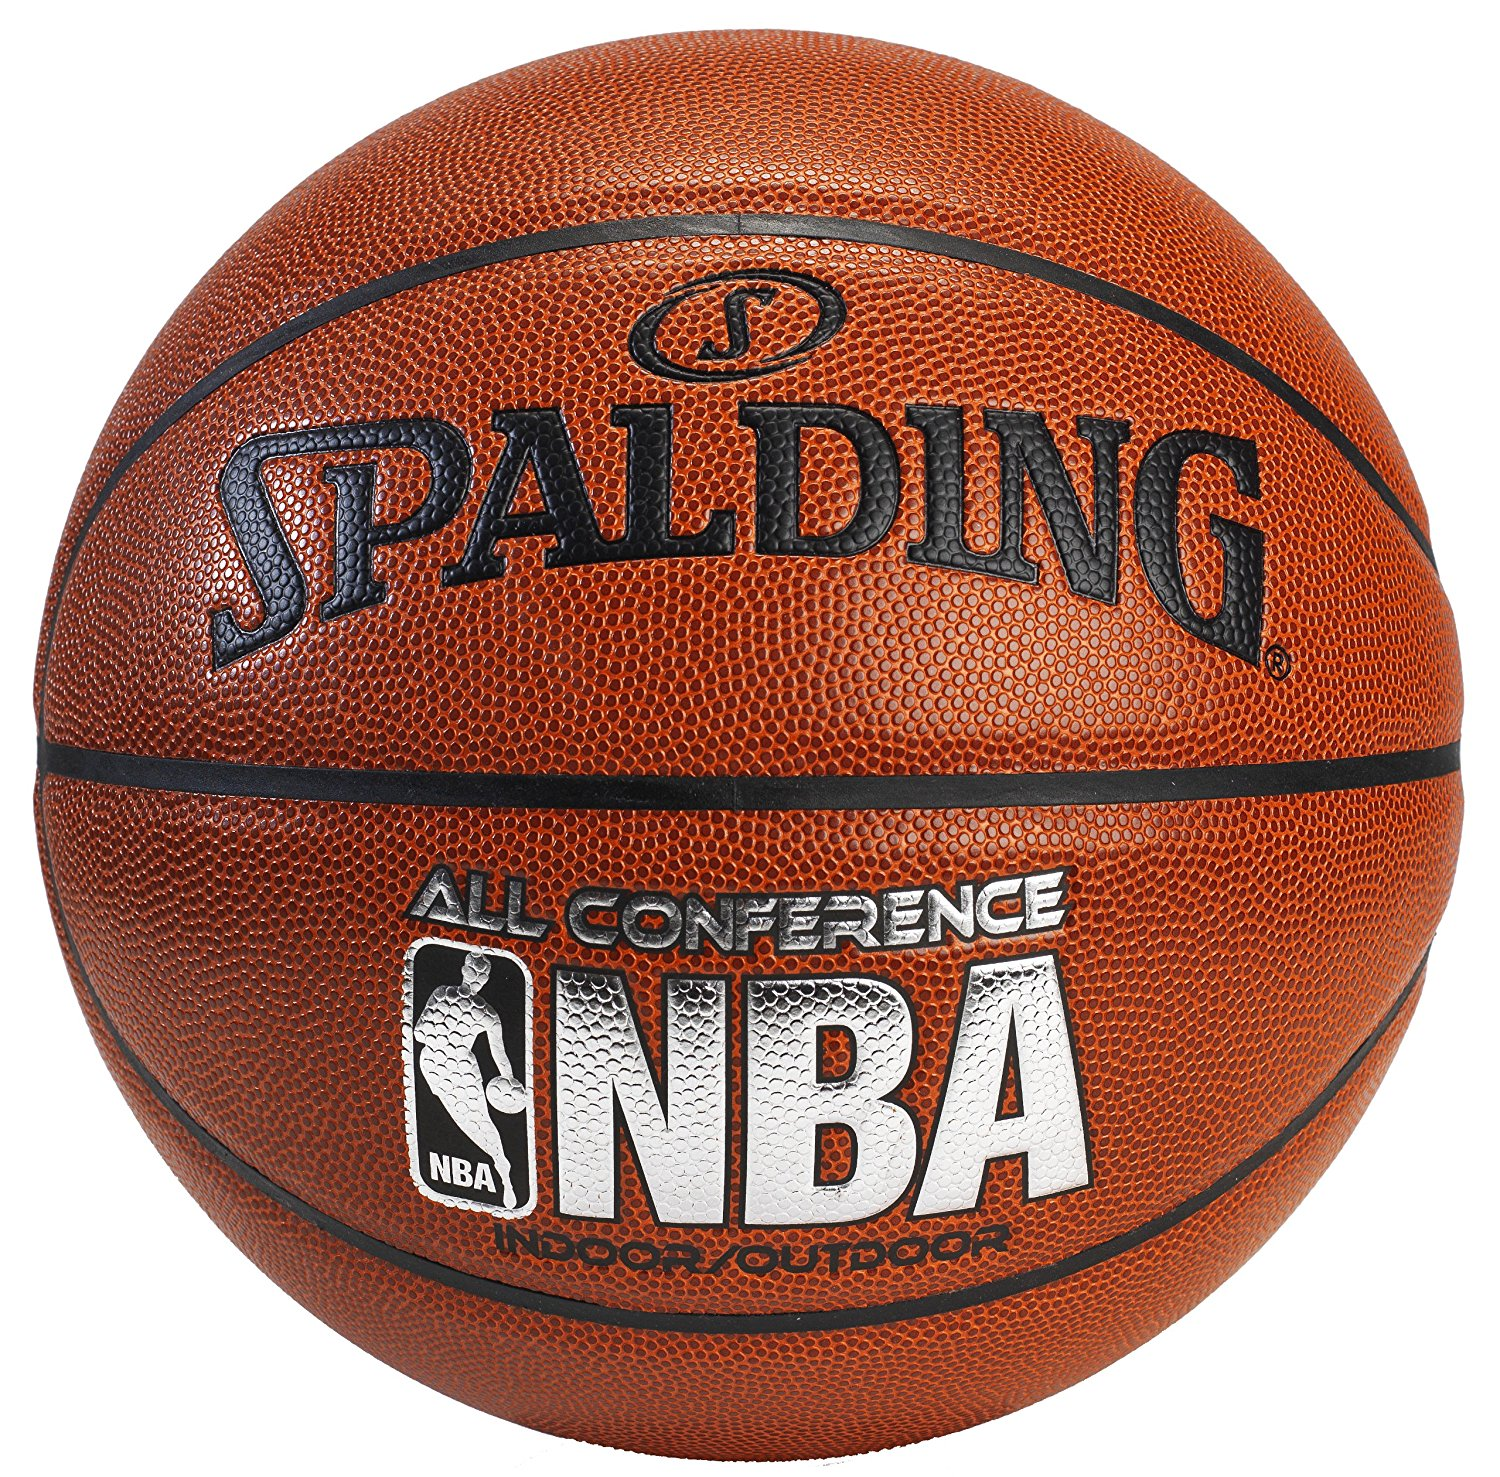 Spalding NBA All Conference 27.5 Comp Basketball Brown/Silver 27.5